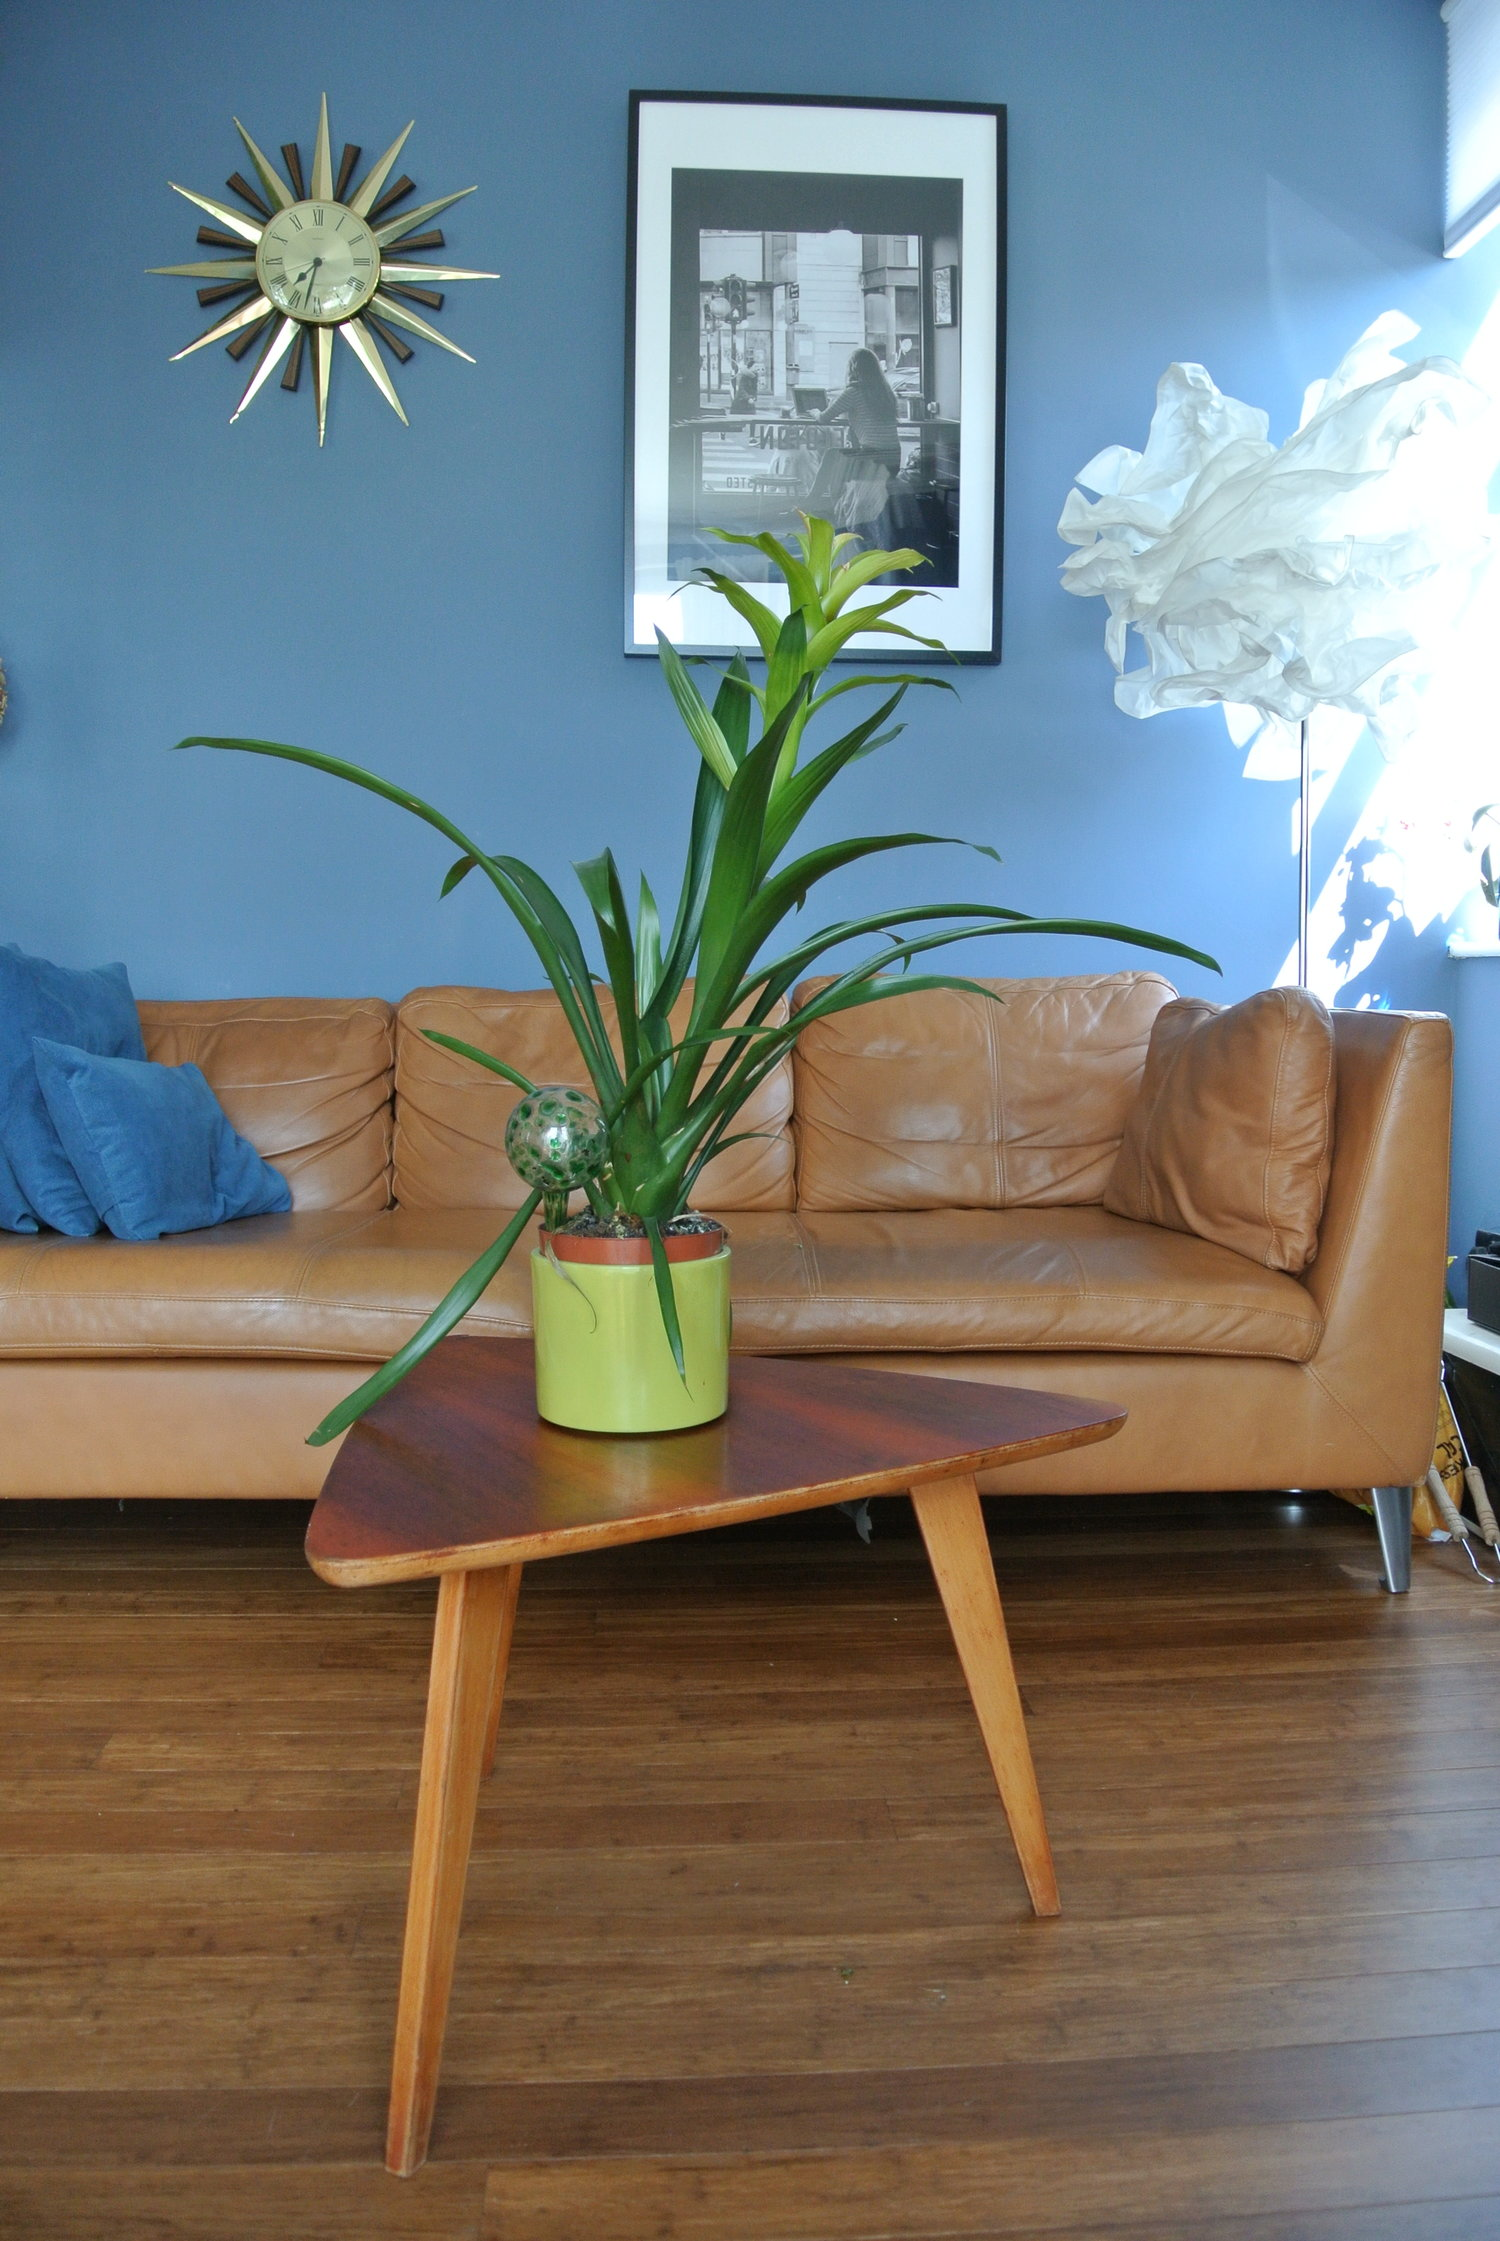 Blog Almeida Interior Design Retro Furniture Shop